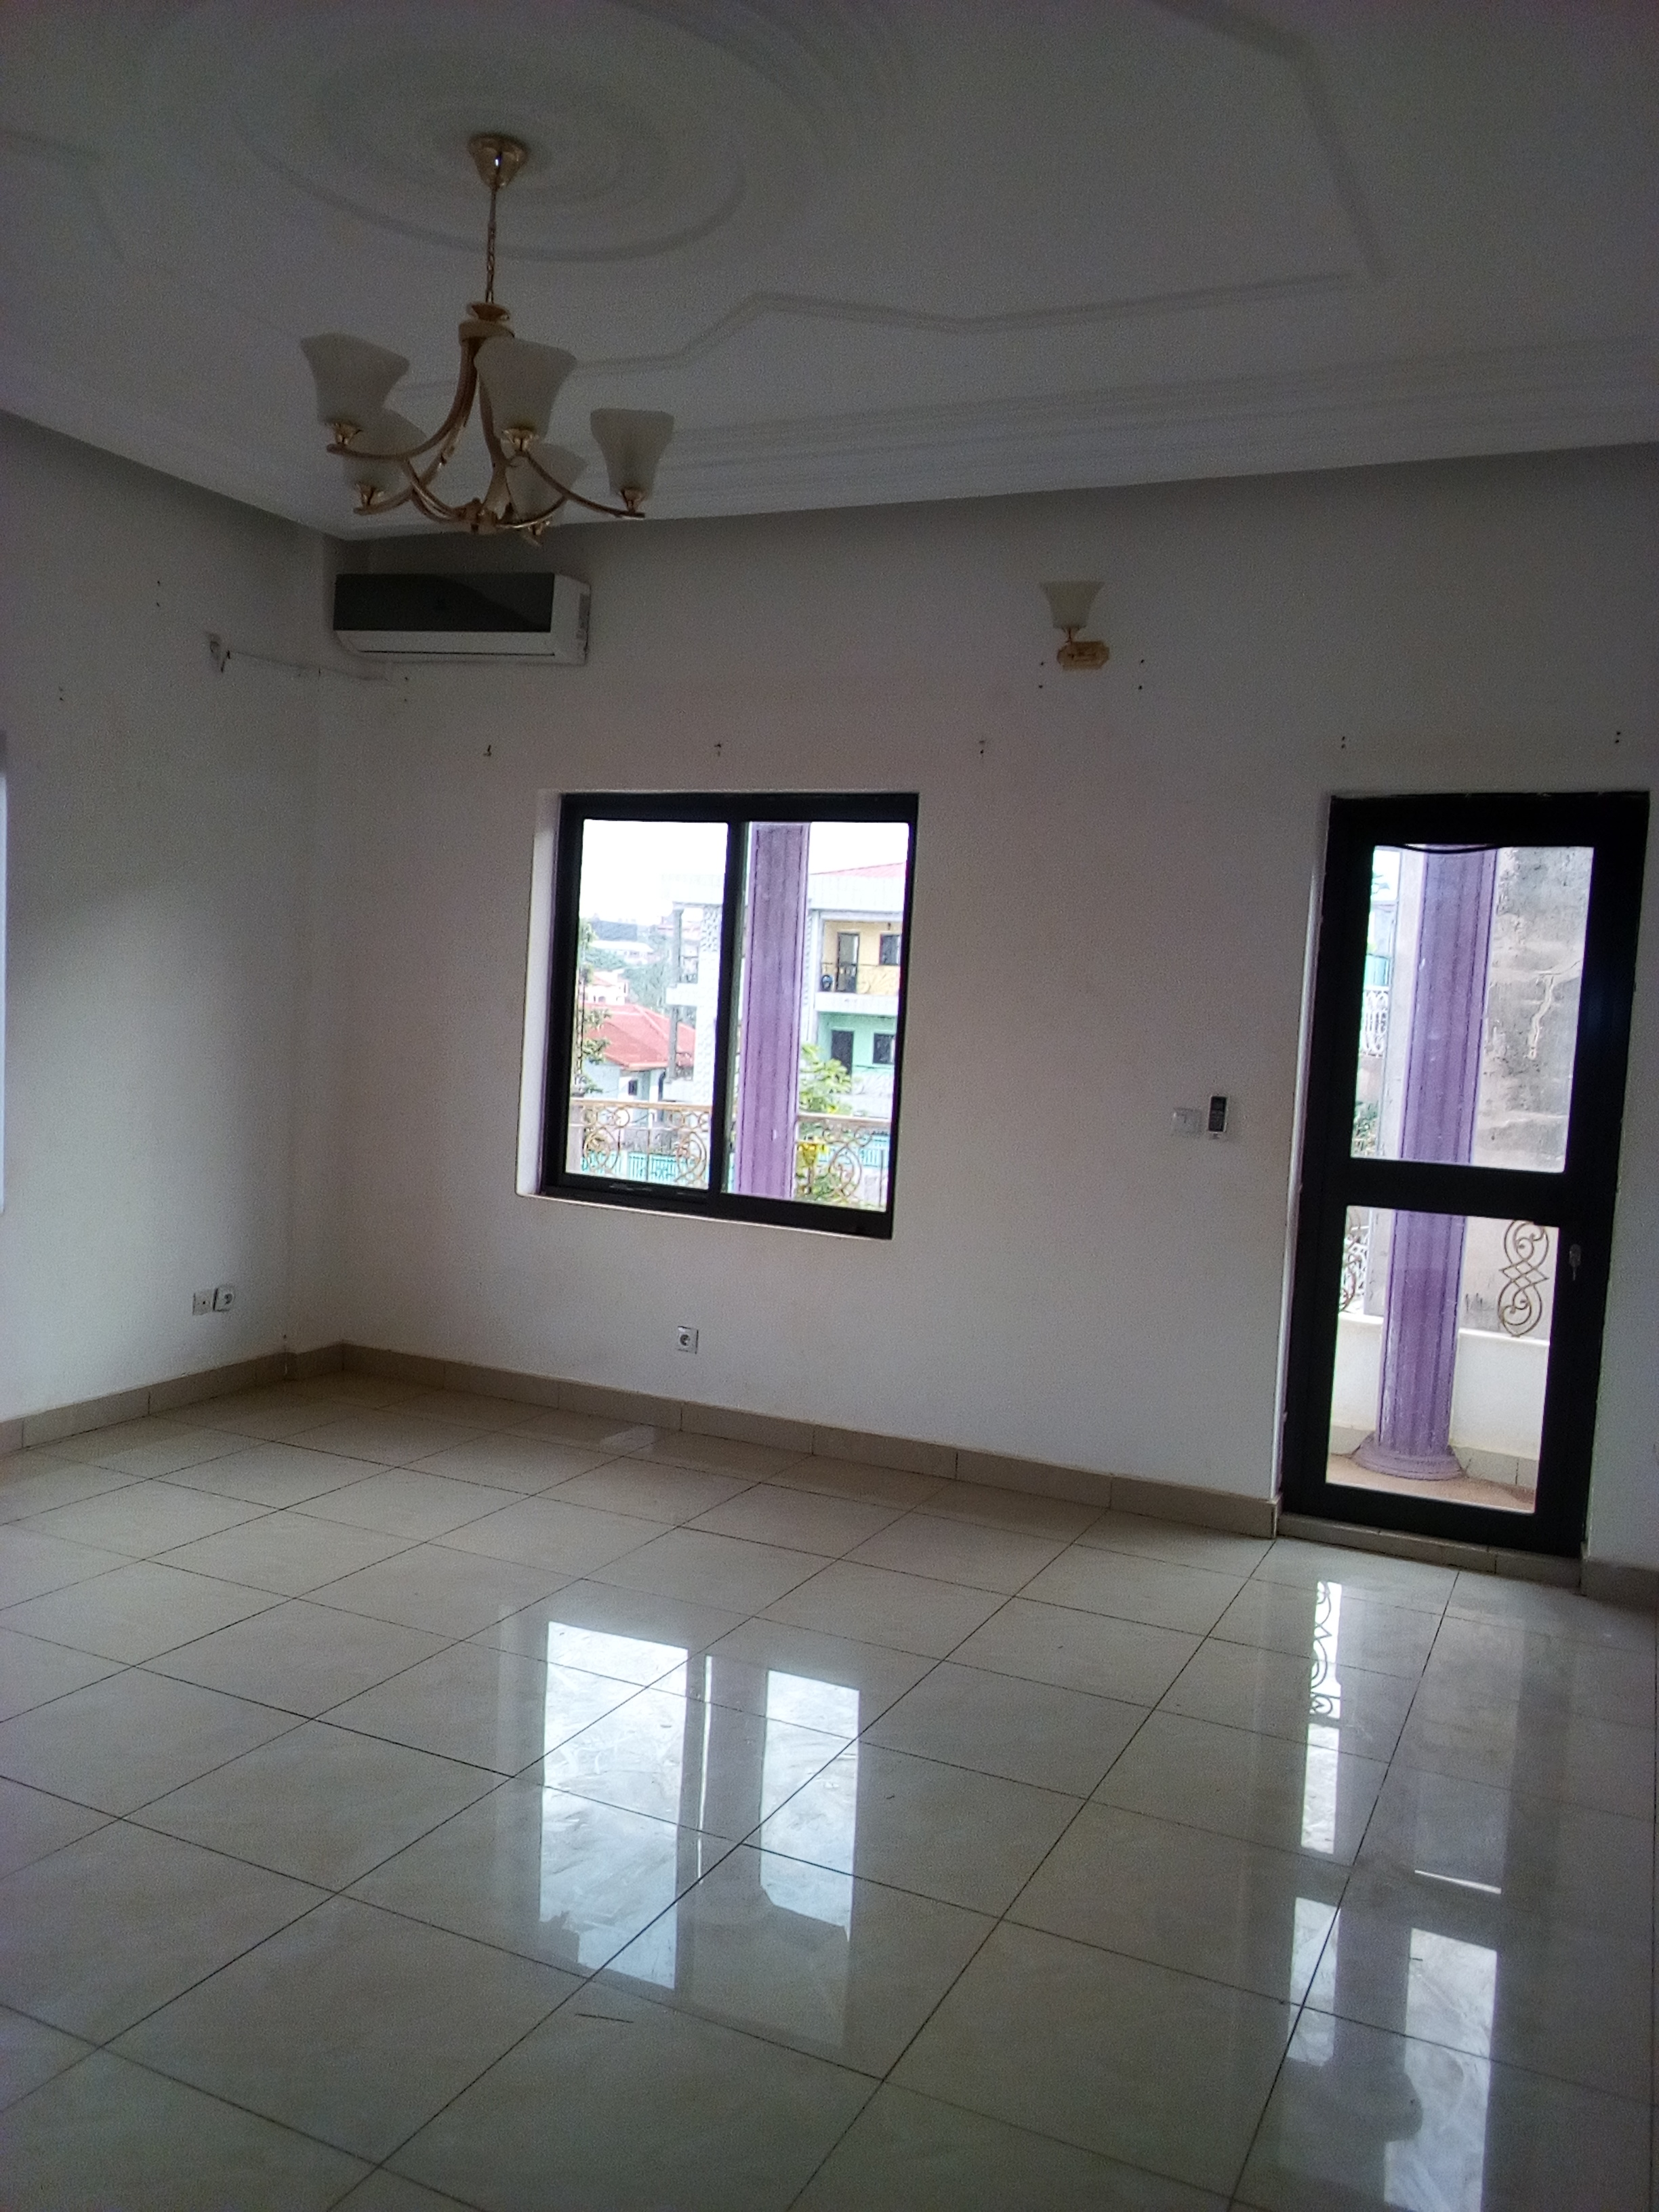 Apartment to rent - Yaoundé, Mfandena,  - 1 living room(s), 2 bedroom(s), 3 bathroom(s) - 250 000 FCFA / month